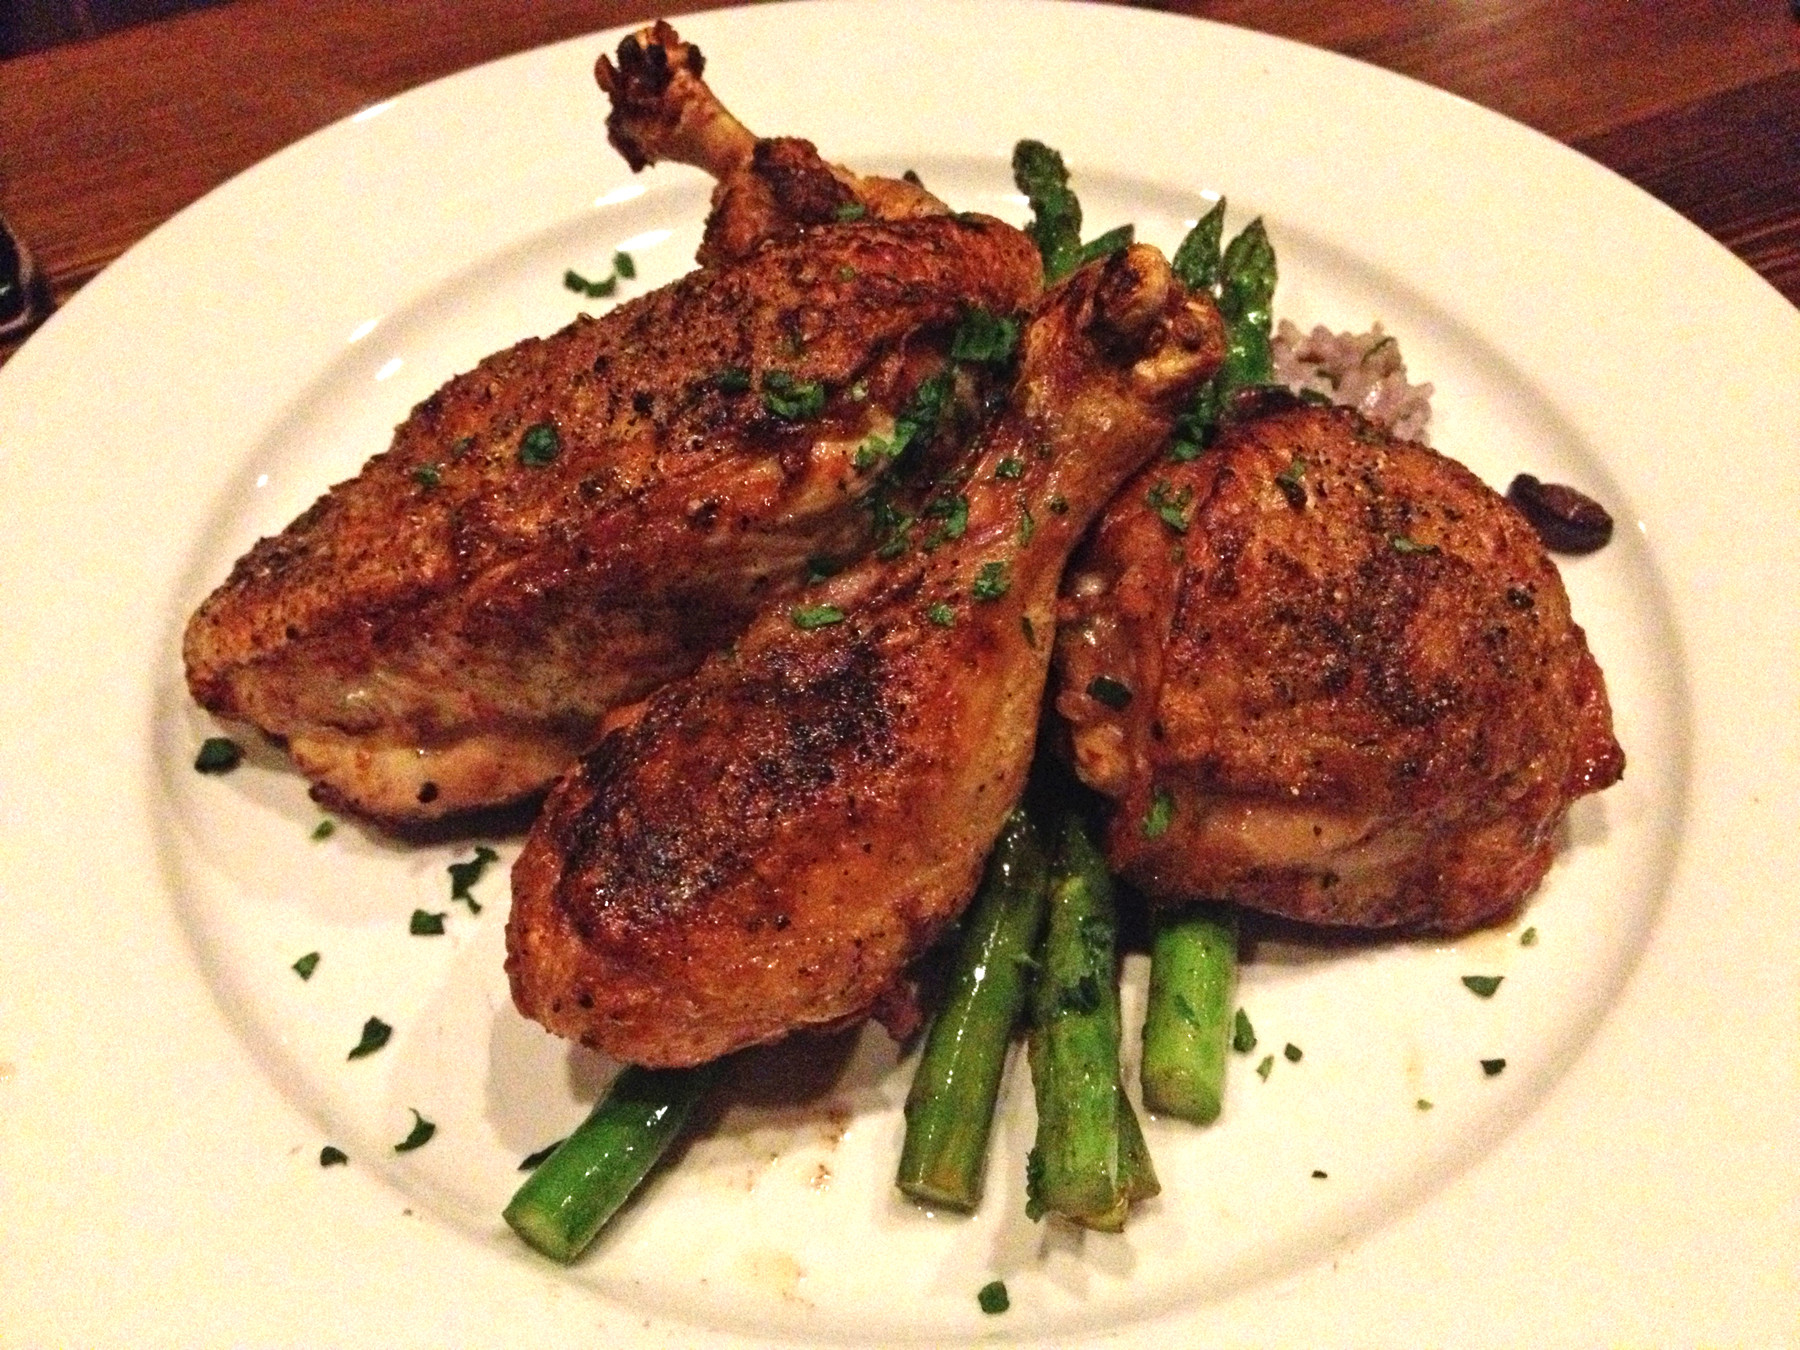 The Black Hog Farm roasted free-range half-chicken comes with red wine risotto, mushroom marmalade and asparagus.